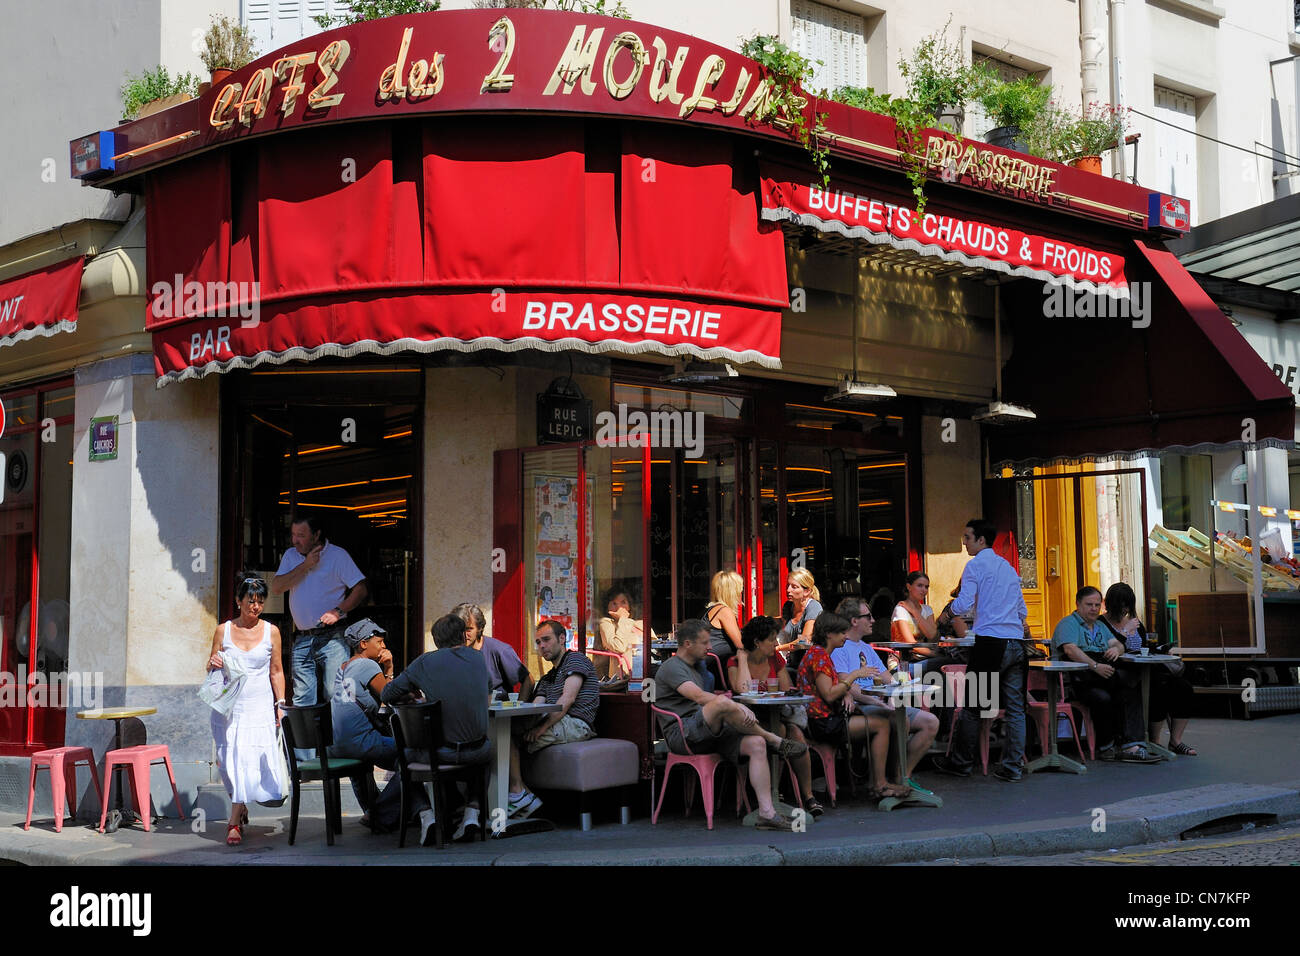 Cafe Amelie Paris